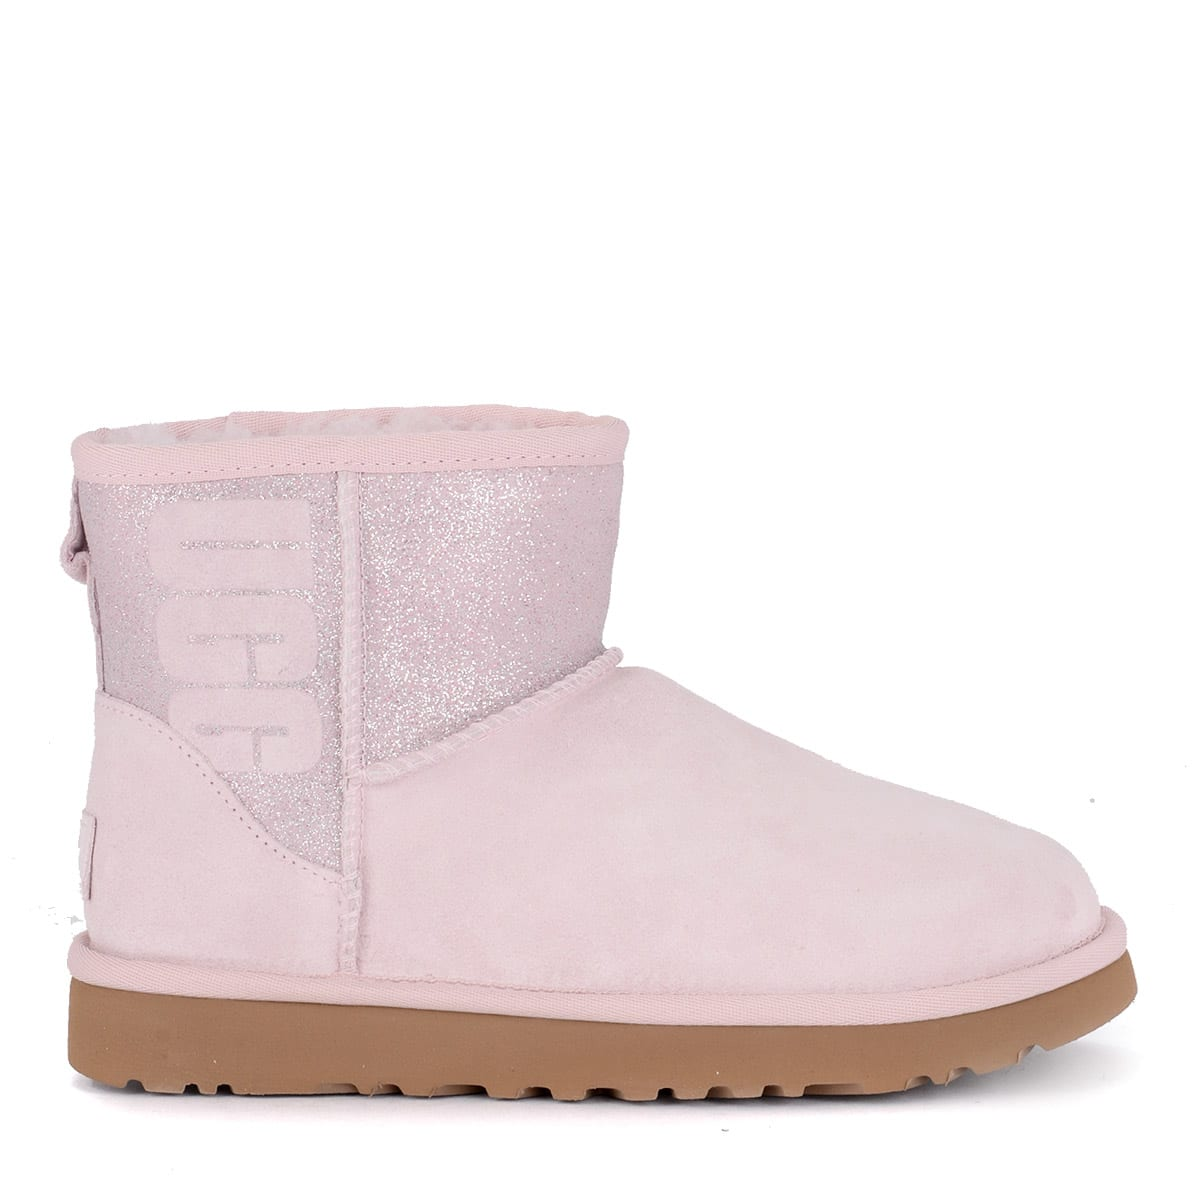 890f30247ec Ugg Classic Mini Logo Sparkle Pink Suede And Glitter Ankle Boots